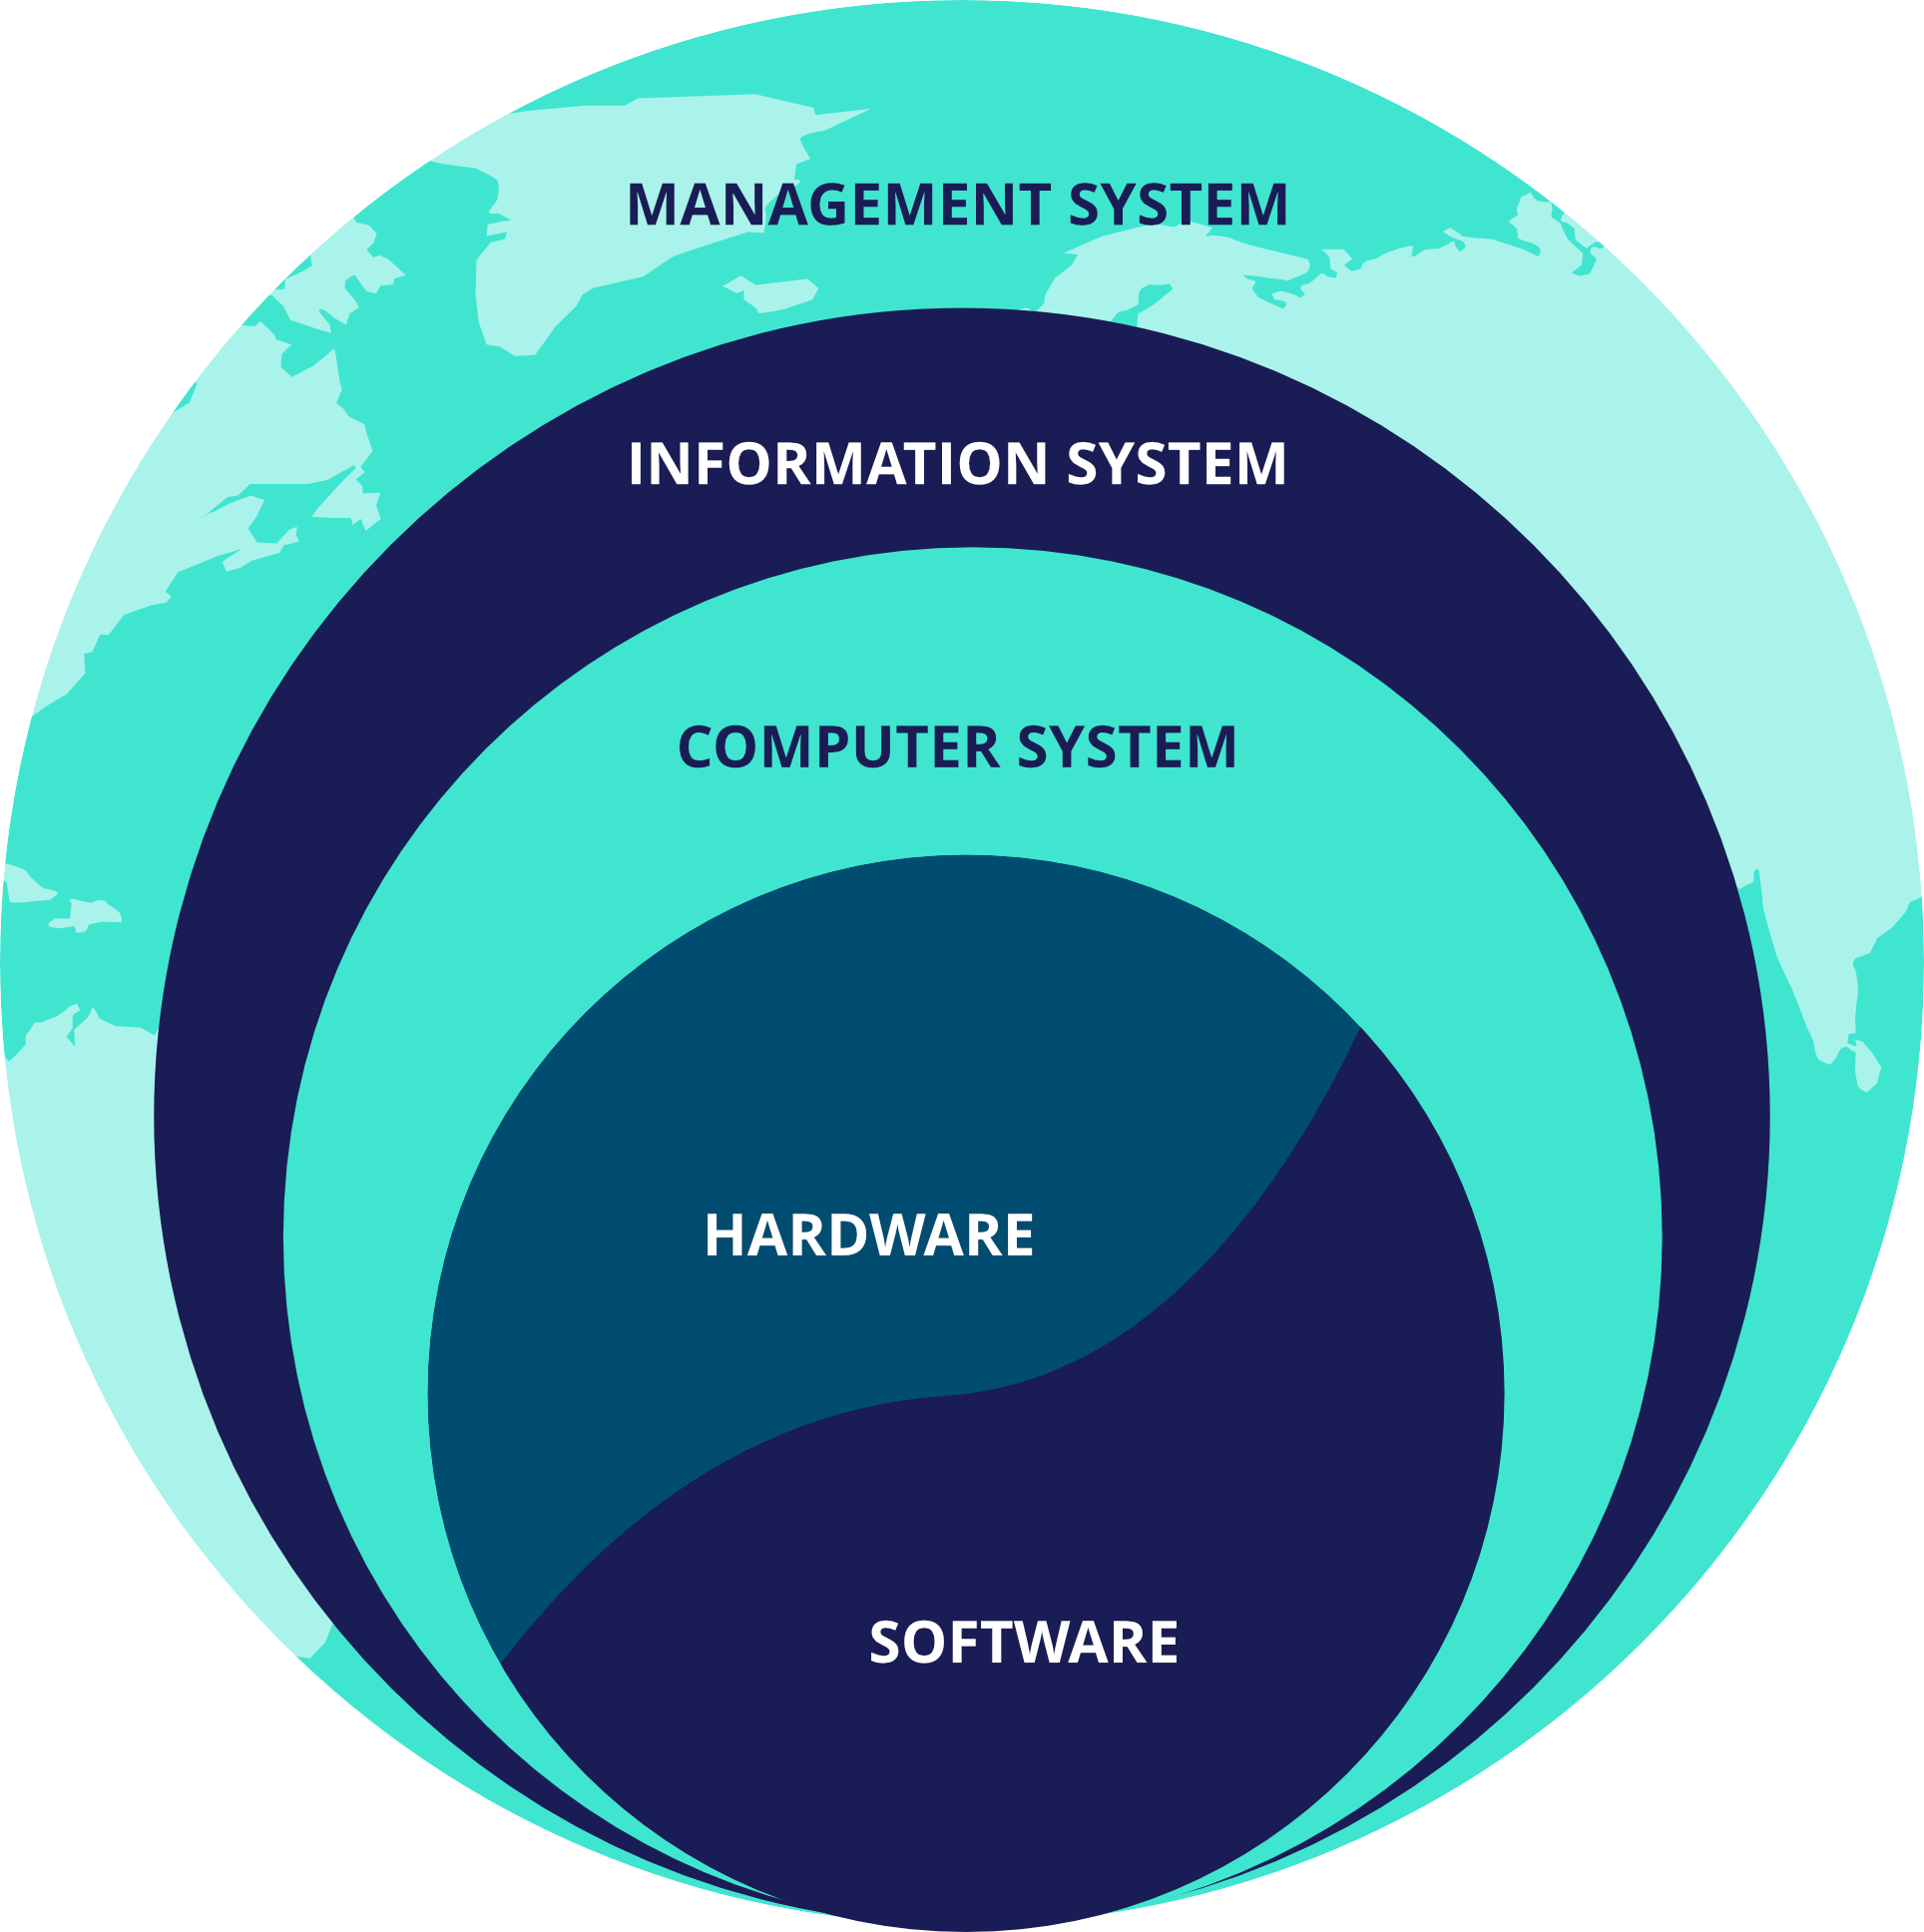 A diagram to show an effective global management system and the components